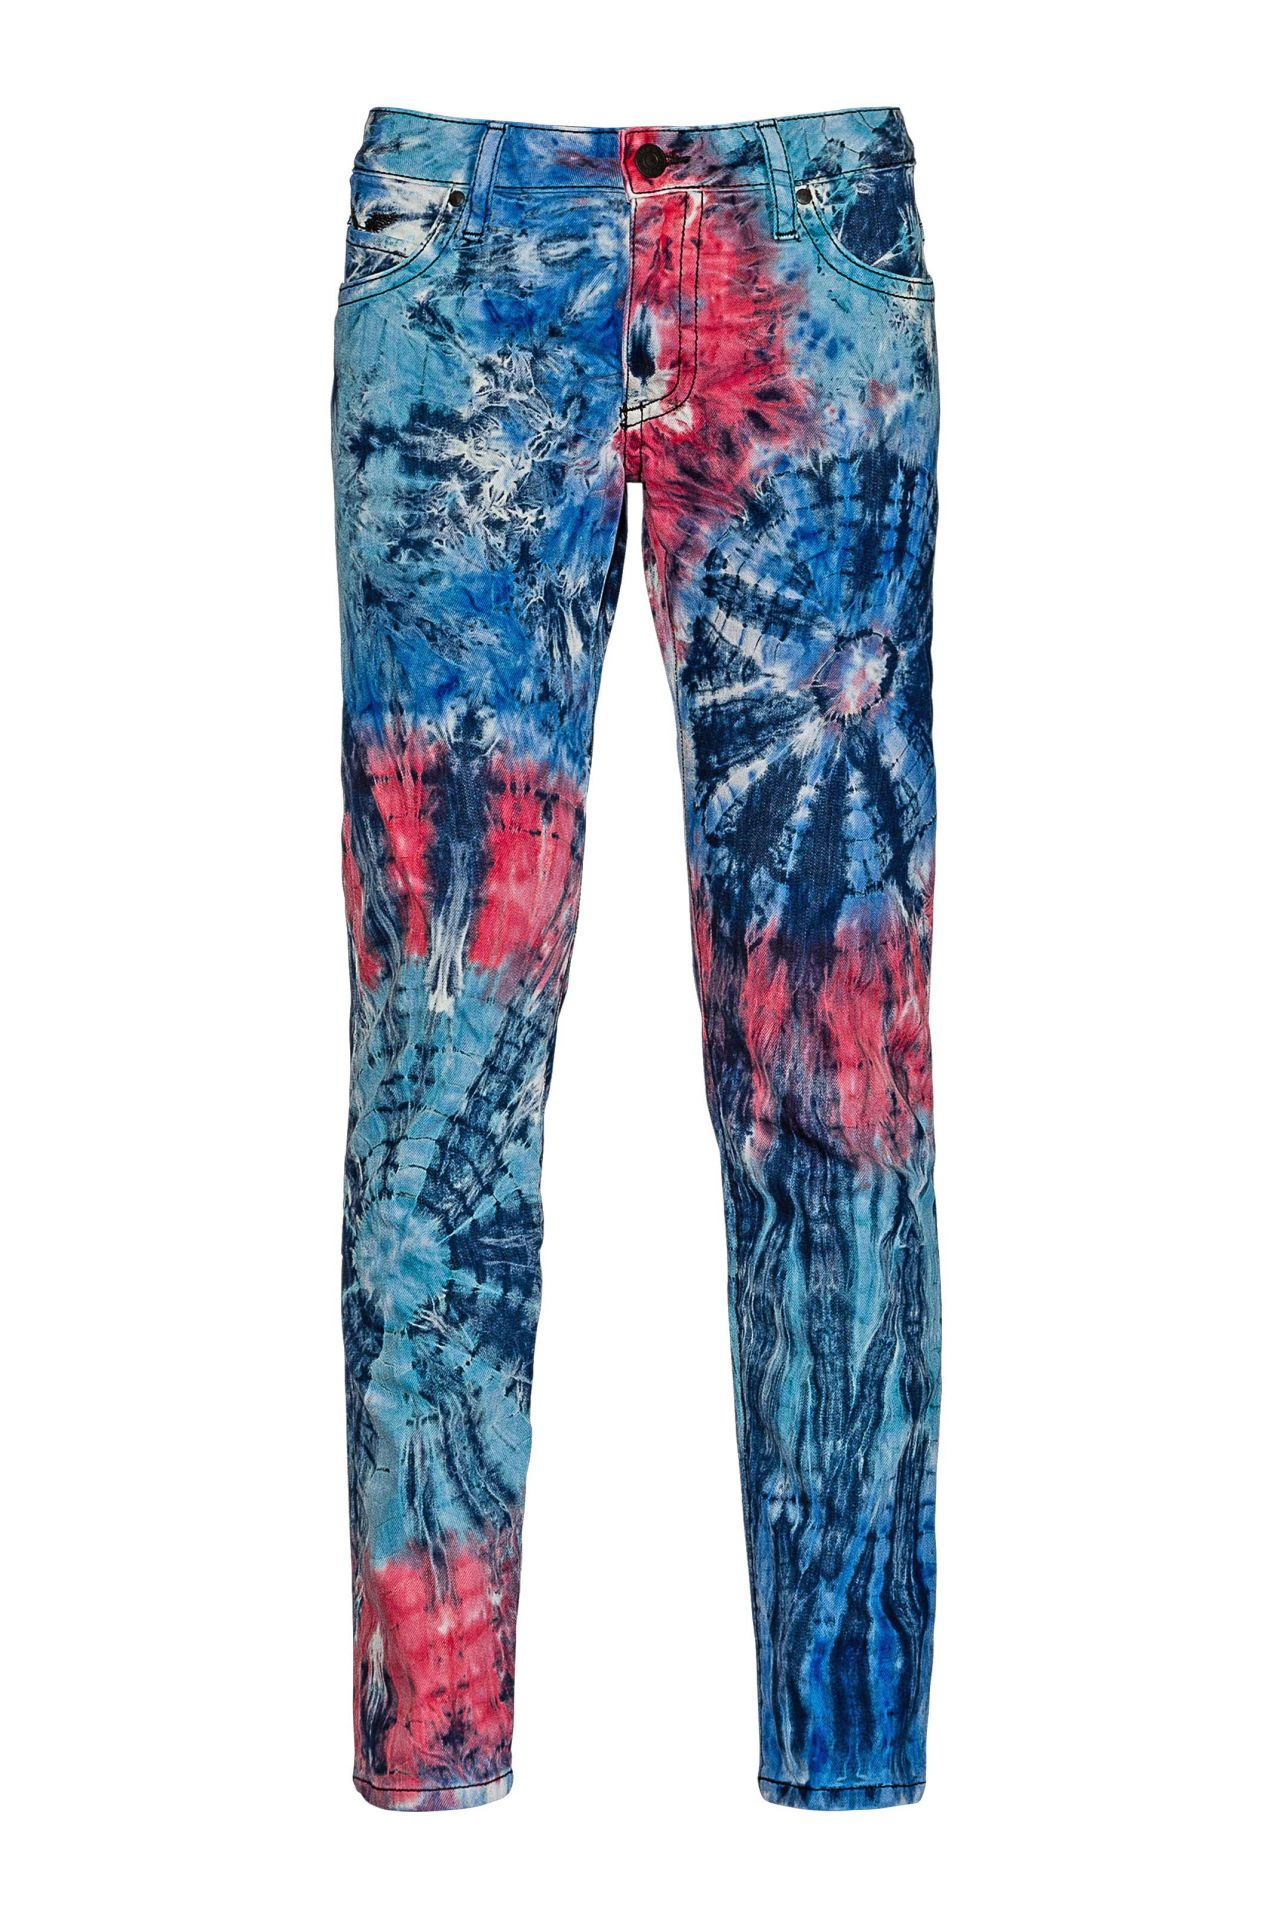 LONG FLAP SKINNY IN FIRE BLUE TIE DYE WITH BLACK AND MONTANA SW